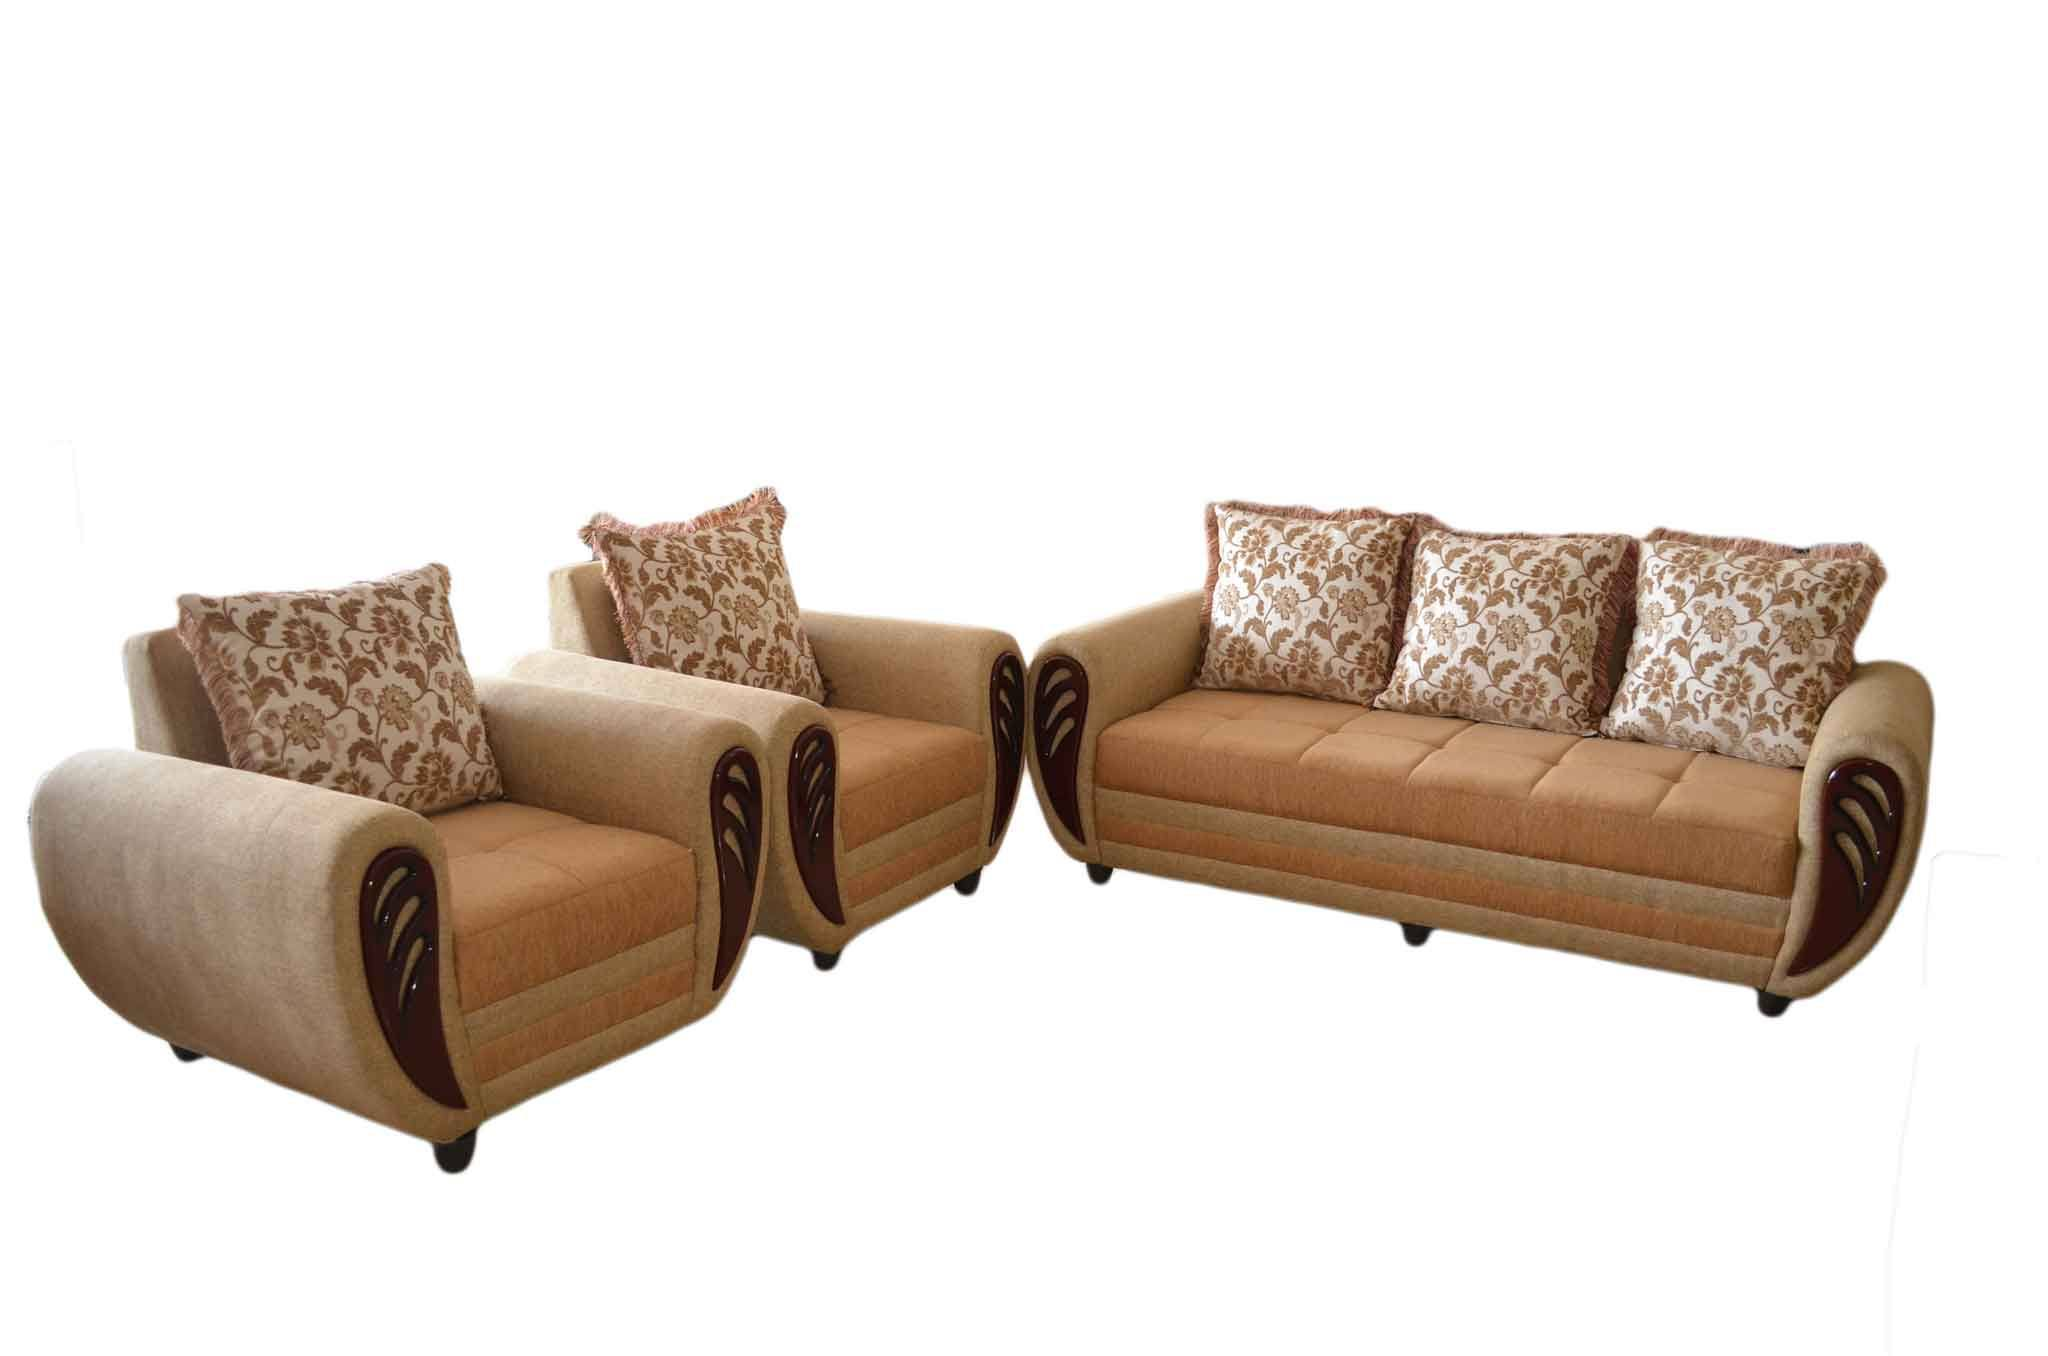 beige sofa set 2 seat reclining with cup holders kessna sets online in hyderabad sanfurn fabric 3 1